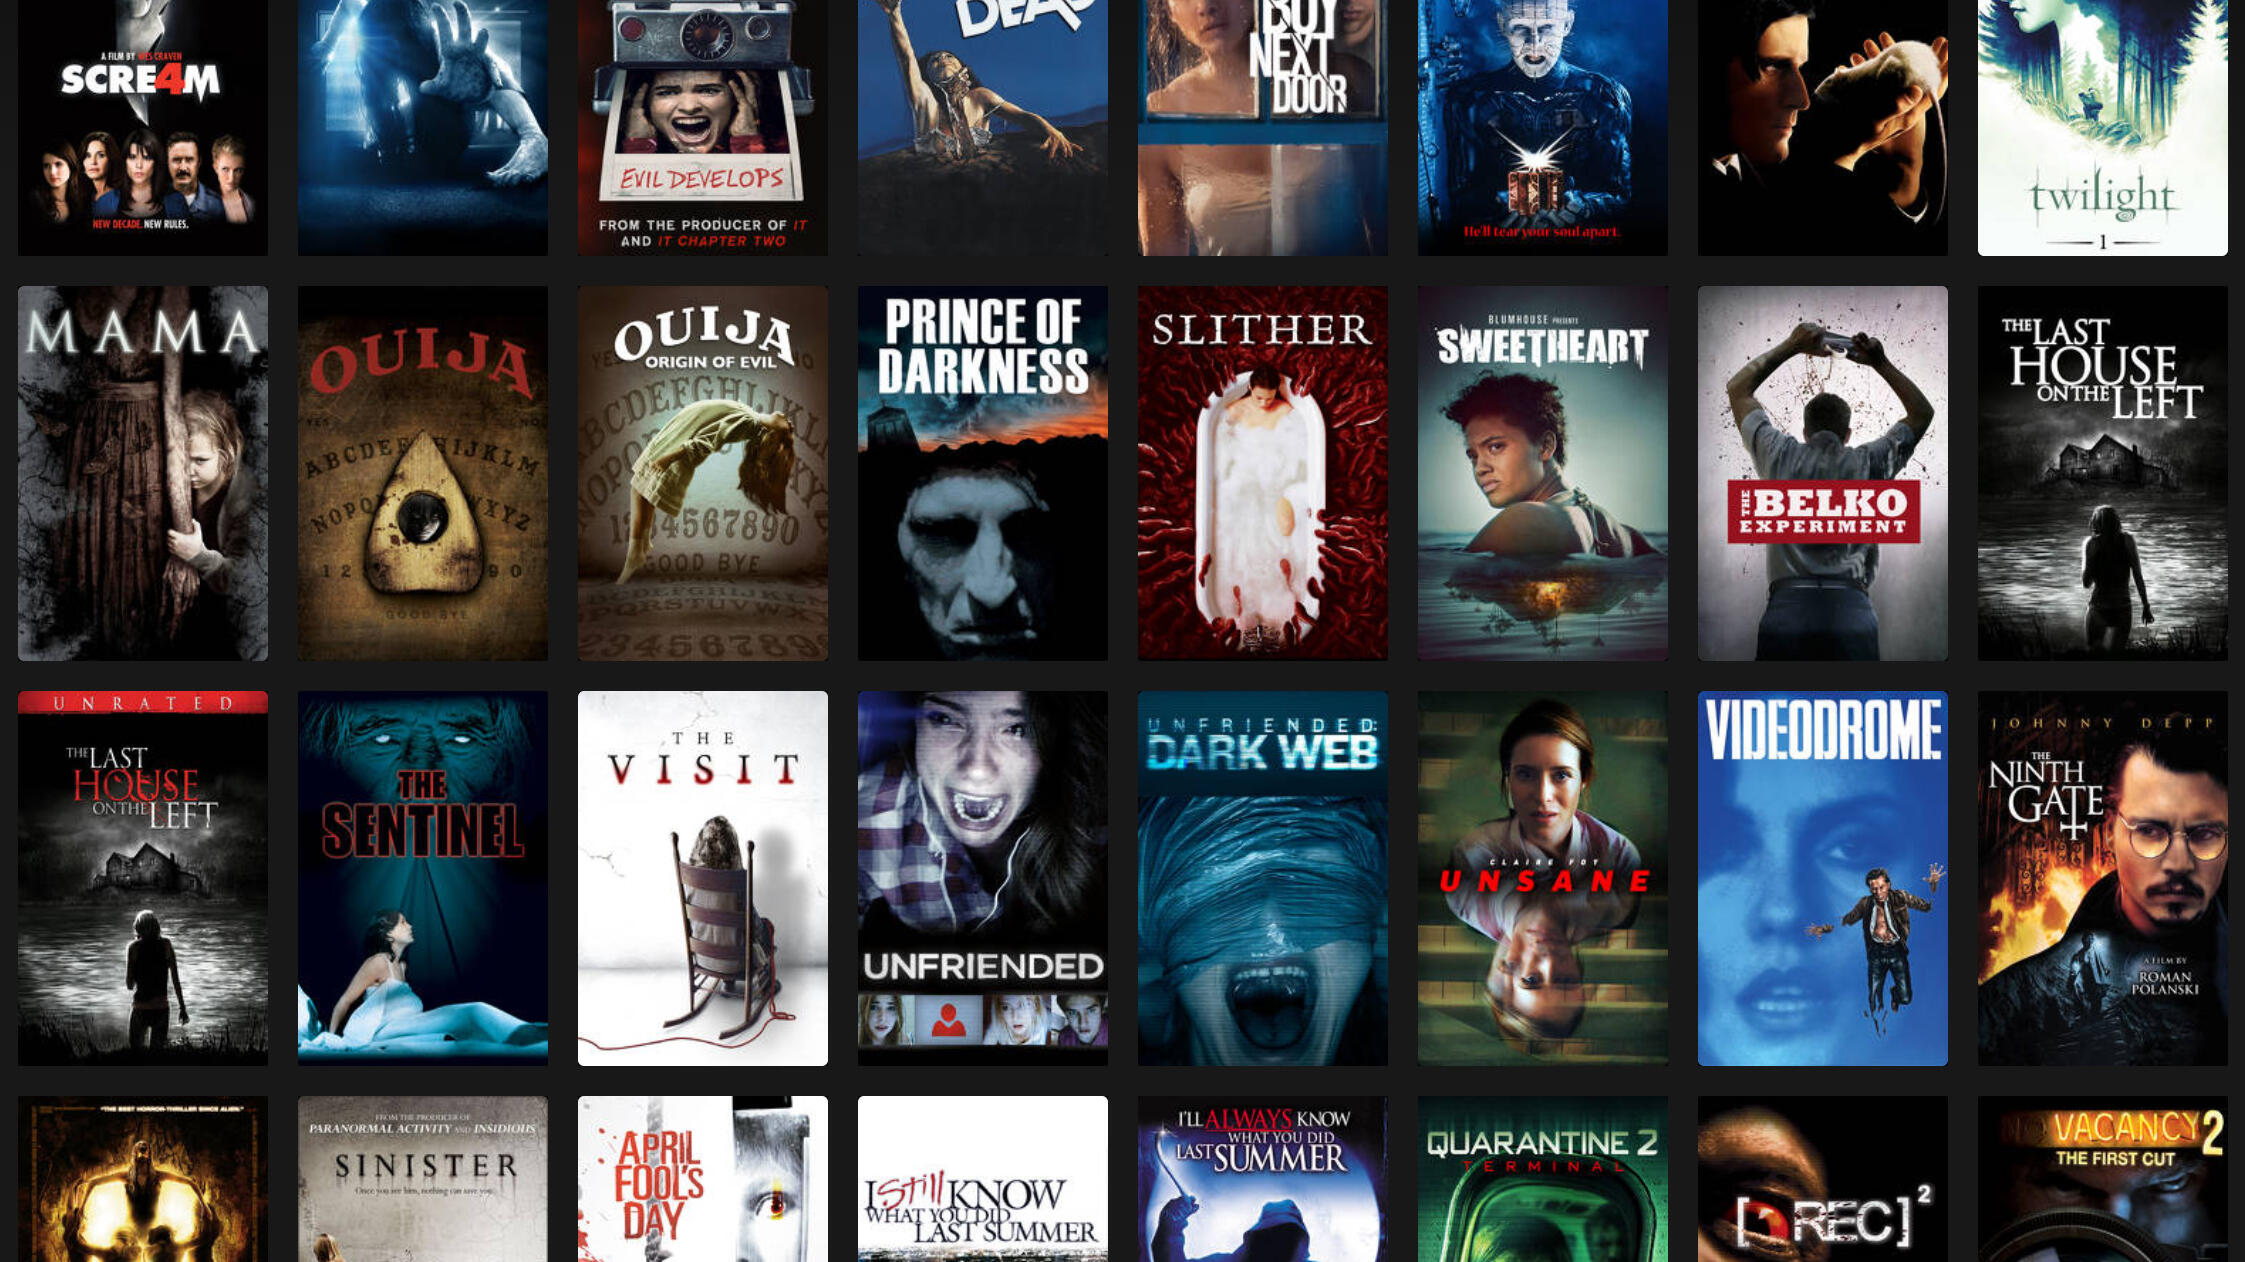 A Number of Medical Horror Films to Watch in Qarantine